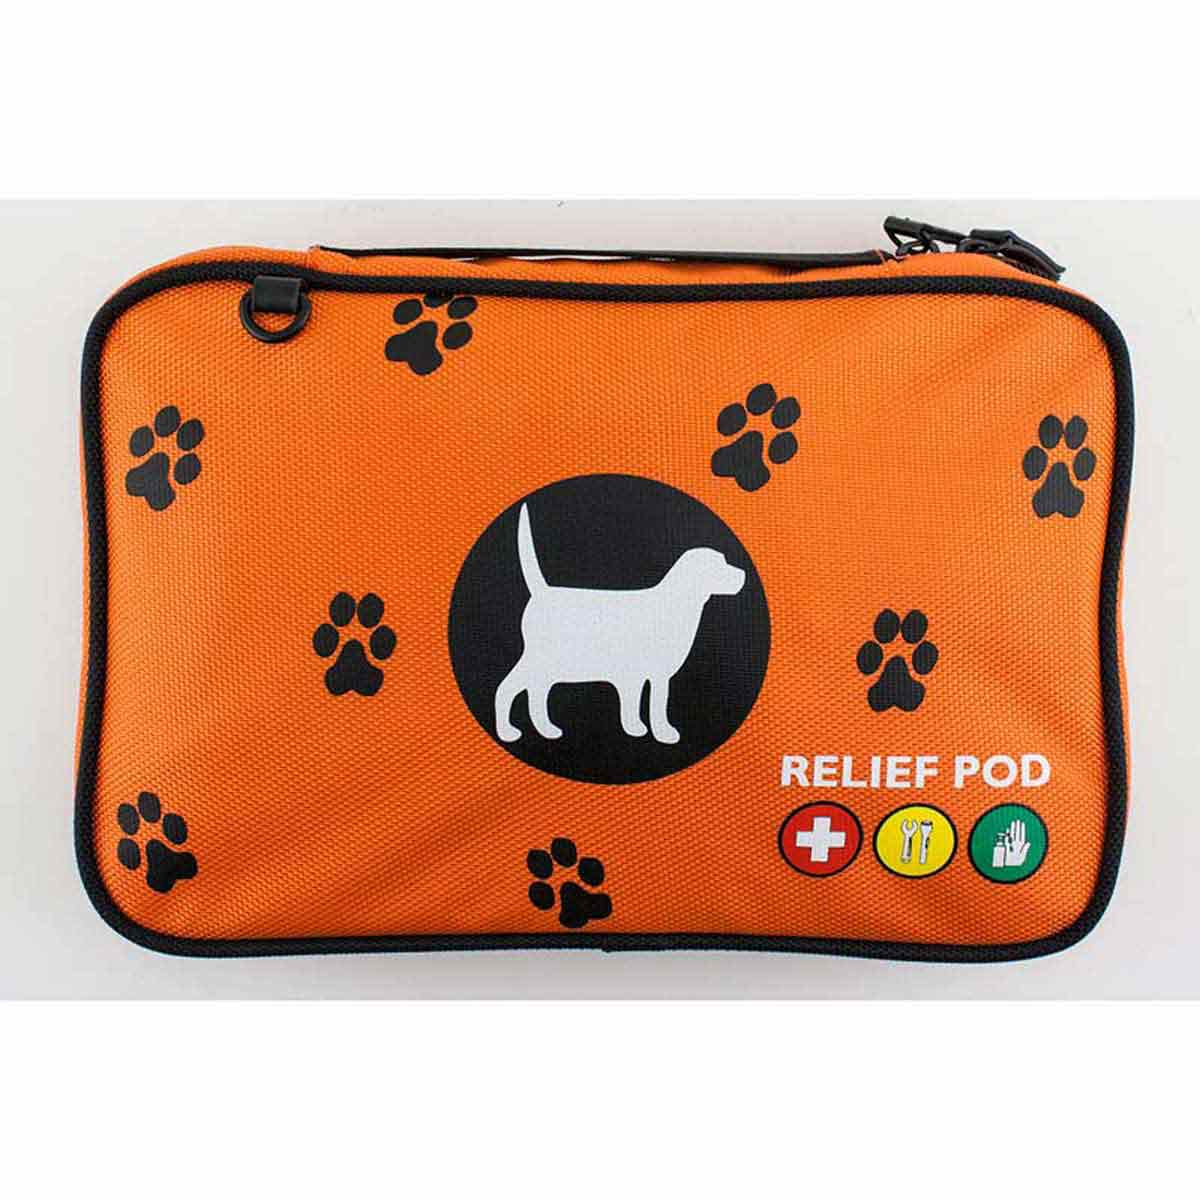 Relief Pod Dog Safety & Care Kit Carrying Kit